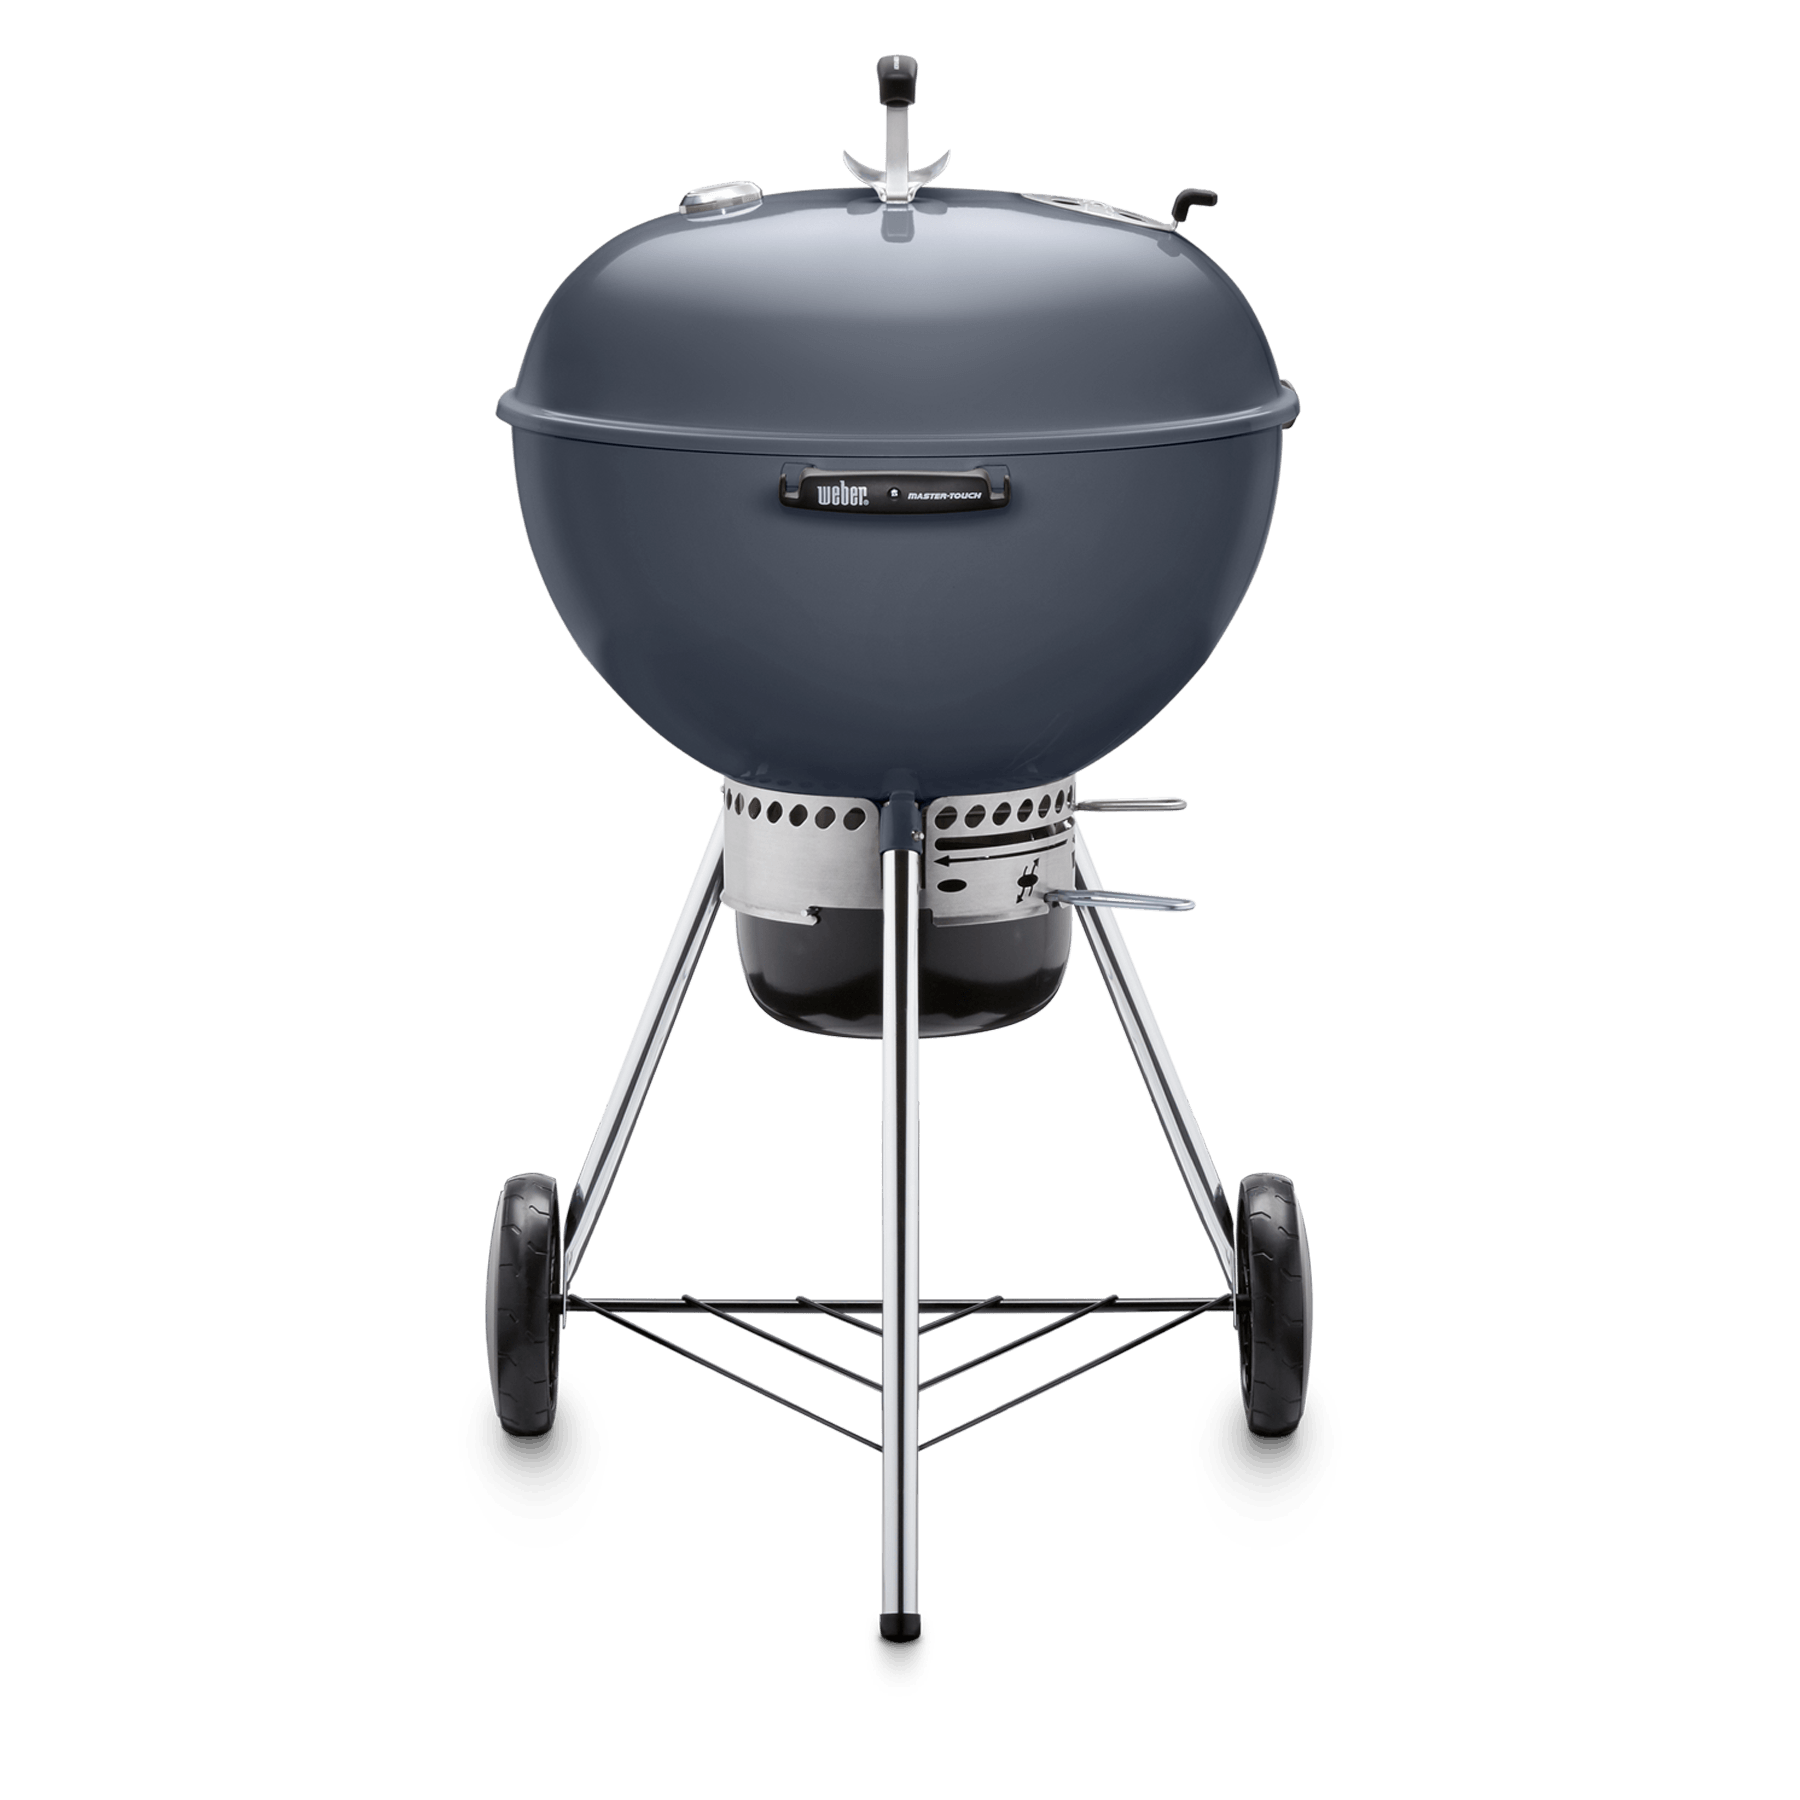 Weber Grill One Touch Master Touch Gbs Charcoal Barbecue 57cm Official Weber Website